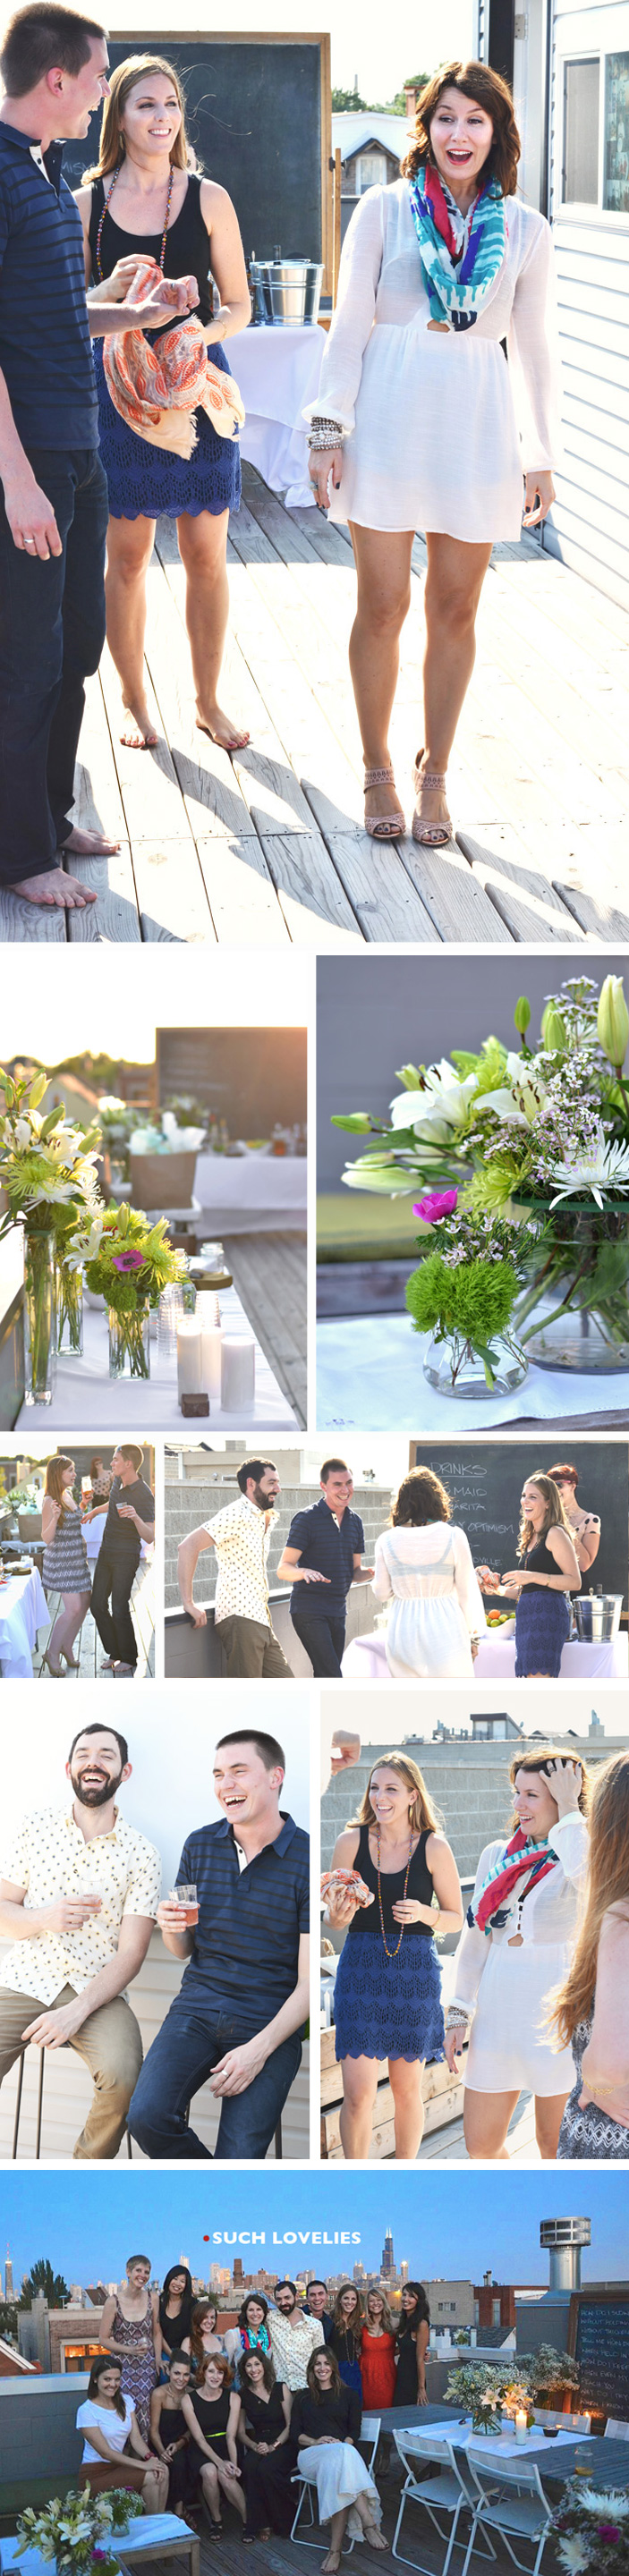 hen-night-party-rooftop-party